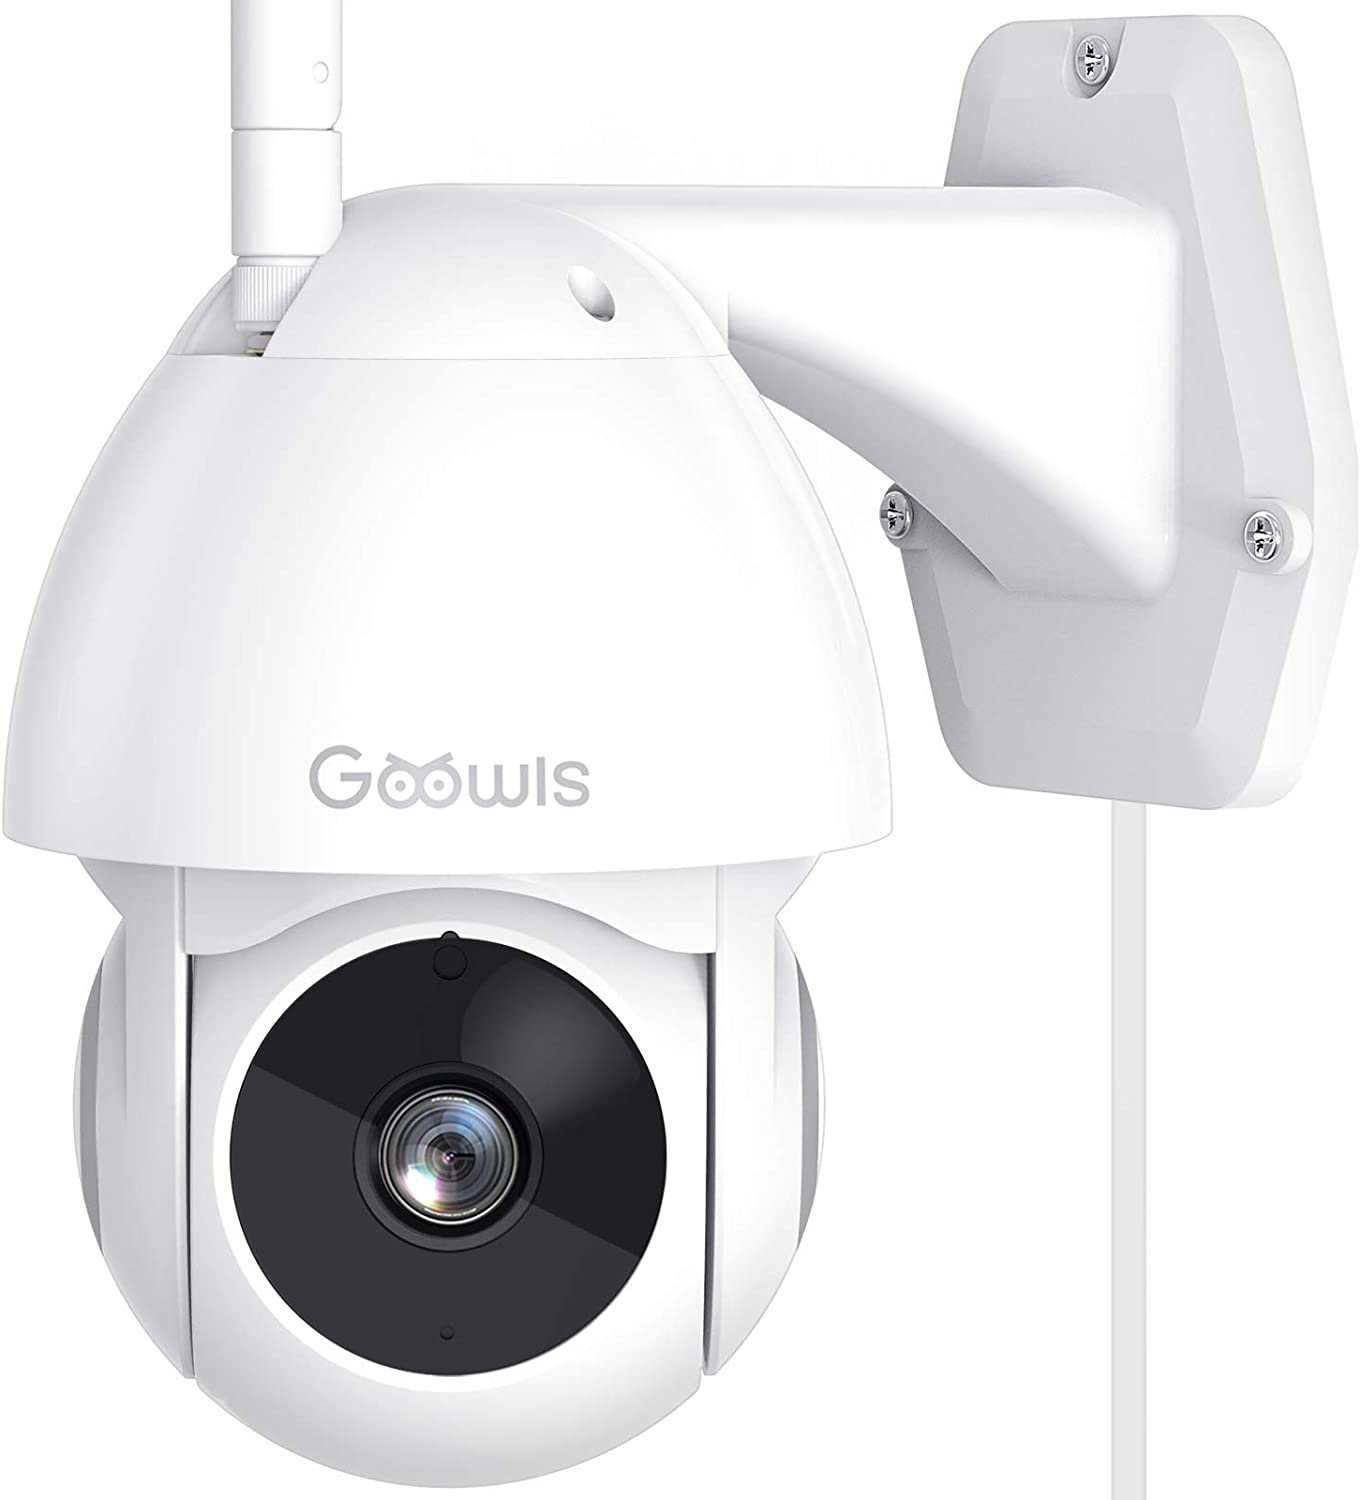 Security Camera Outdoor Goowls 1080P Pan Tilt Max 80% OFF Max 84% OFF Sm WiFi 2.4G Home